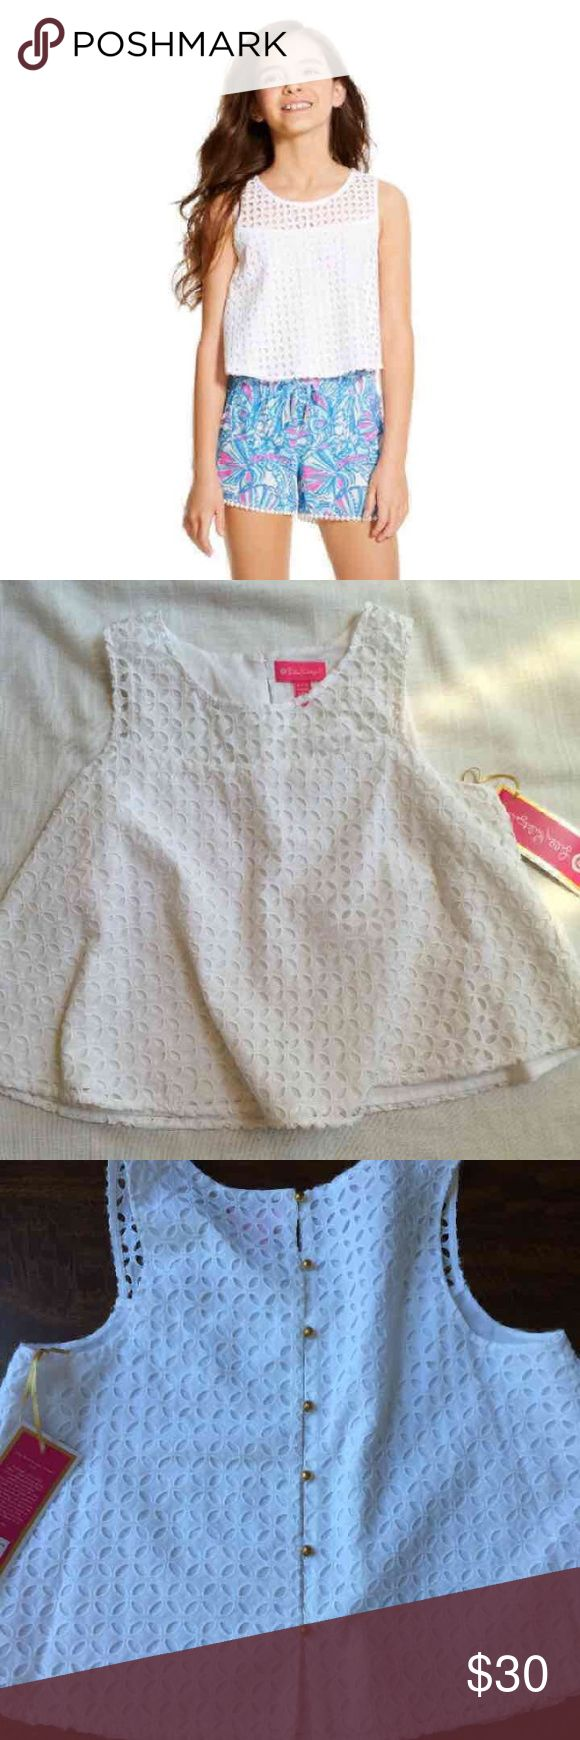 🆕NWT Lilly Pulitzer XL Girls Crochet Top Brand new with tags. Size XL.⚡Will not be priced lower. ❌No offers❌ Lilly Pulitzer for Target Shirts & Tops Blouses